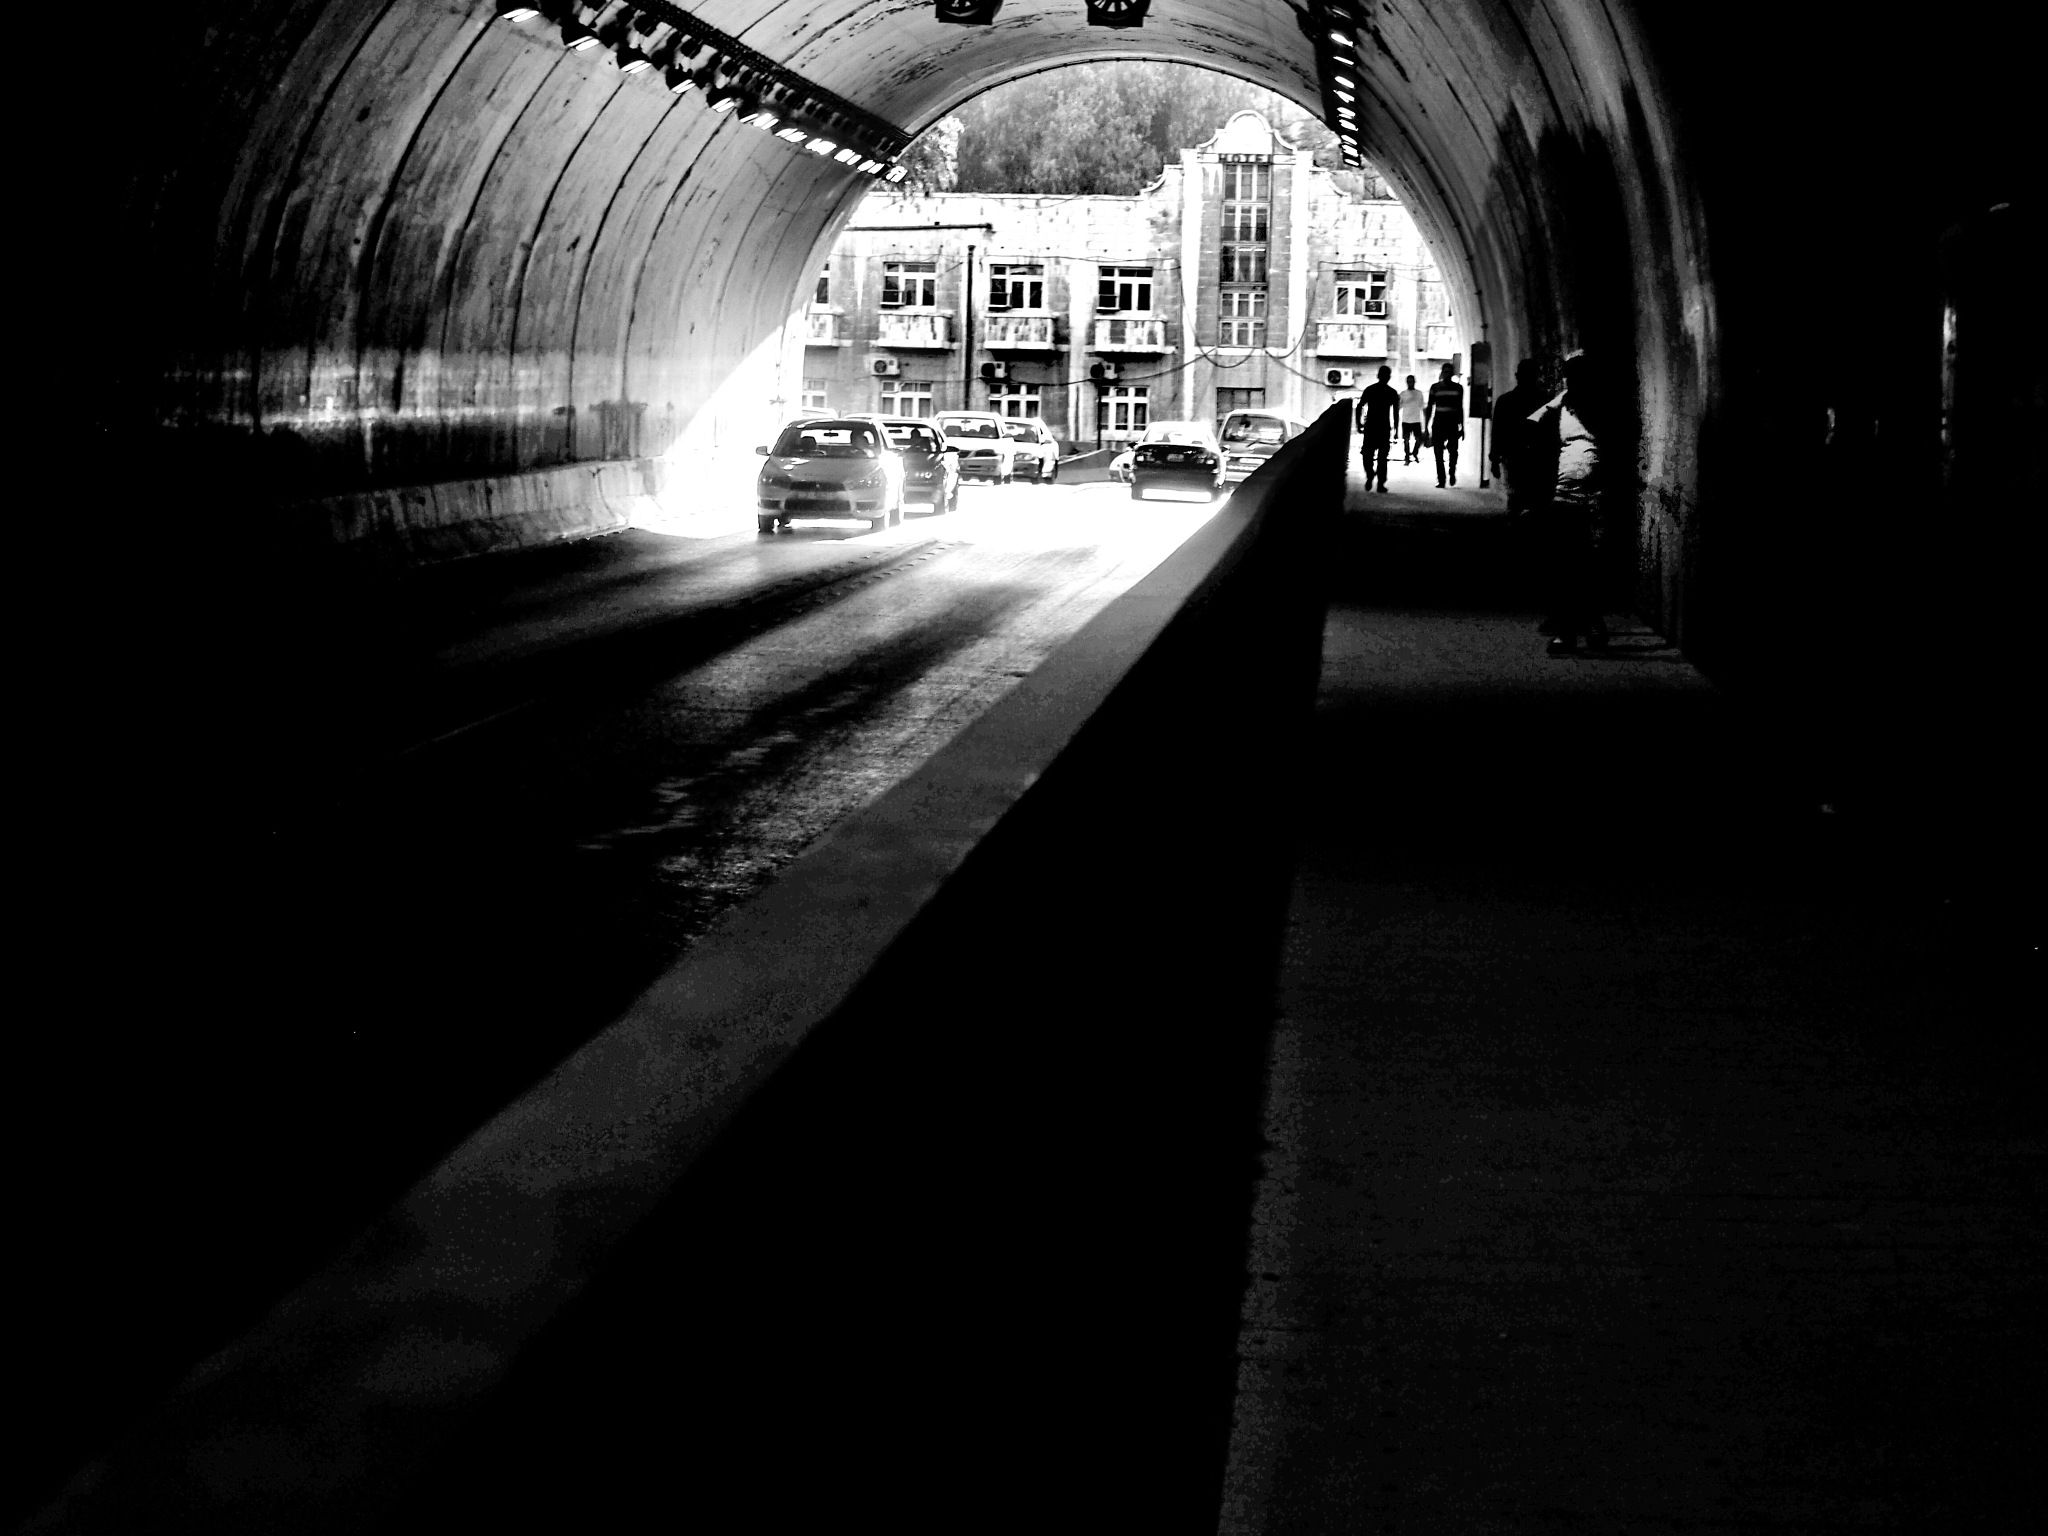 The Tunnel by Bert Lee